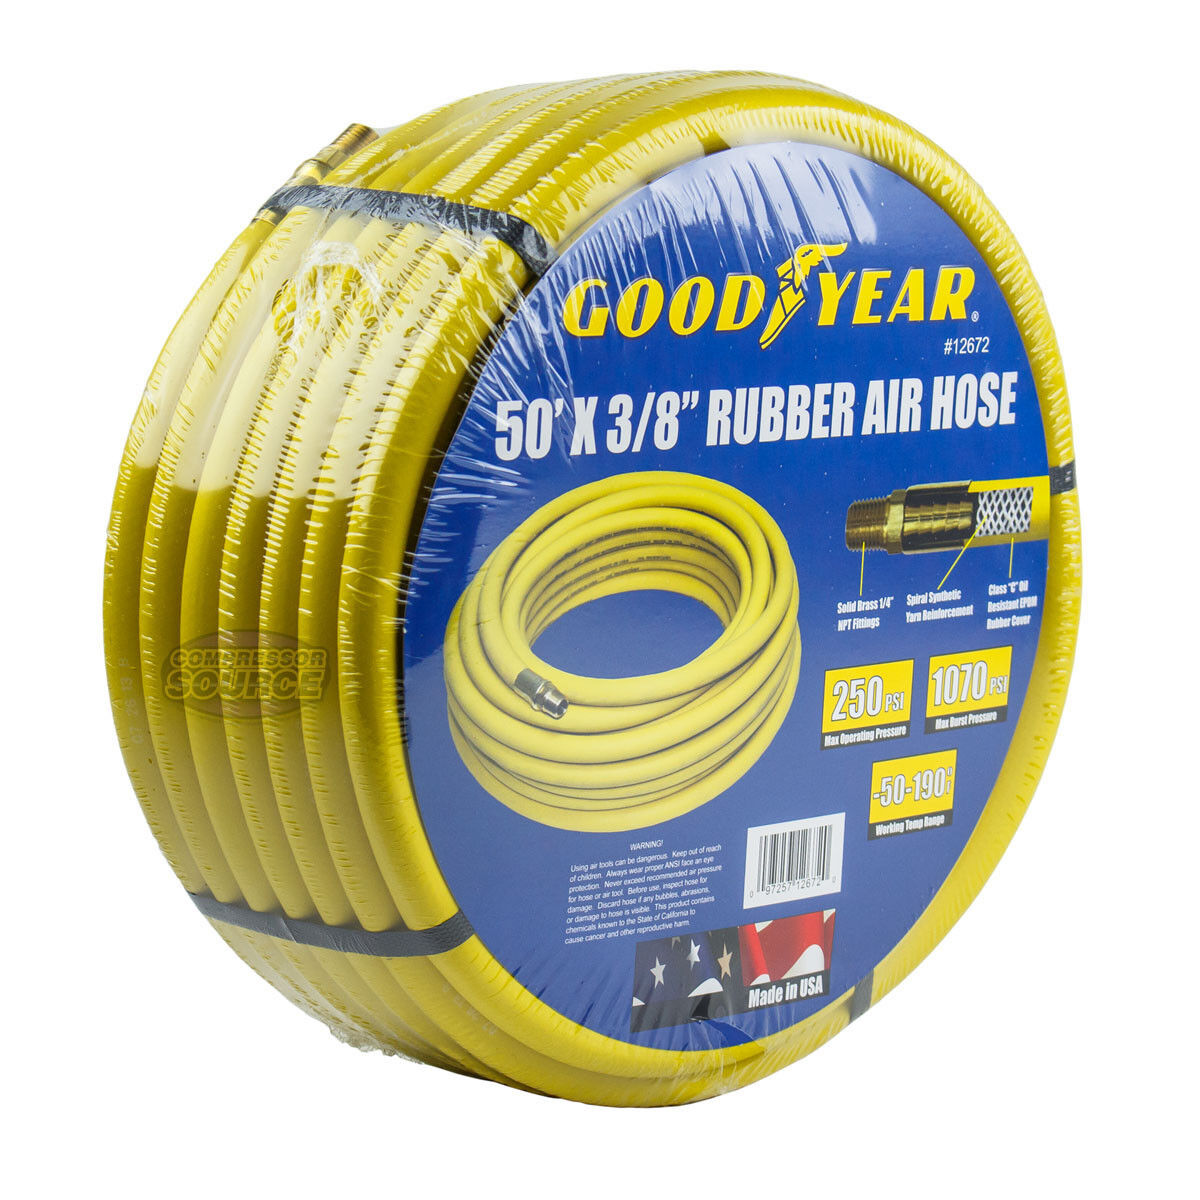 Goodyear Rubber Air Hose 50' ft. x 3 8  in. 250 PSI Air Compressor Hose 12672